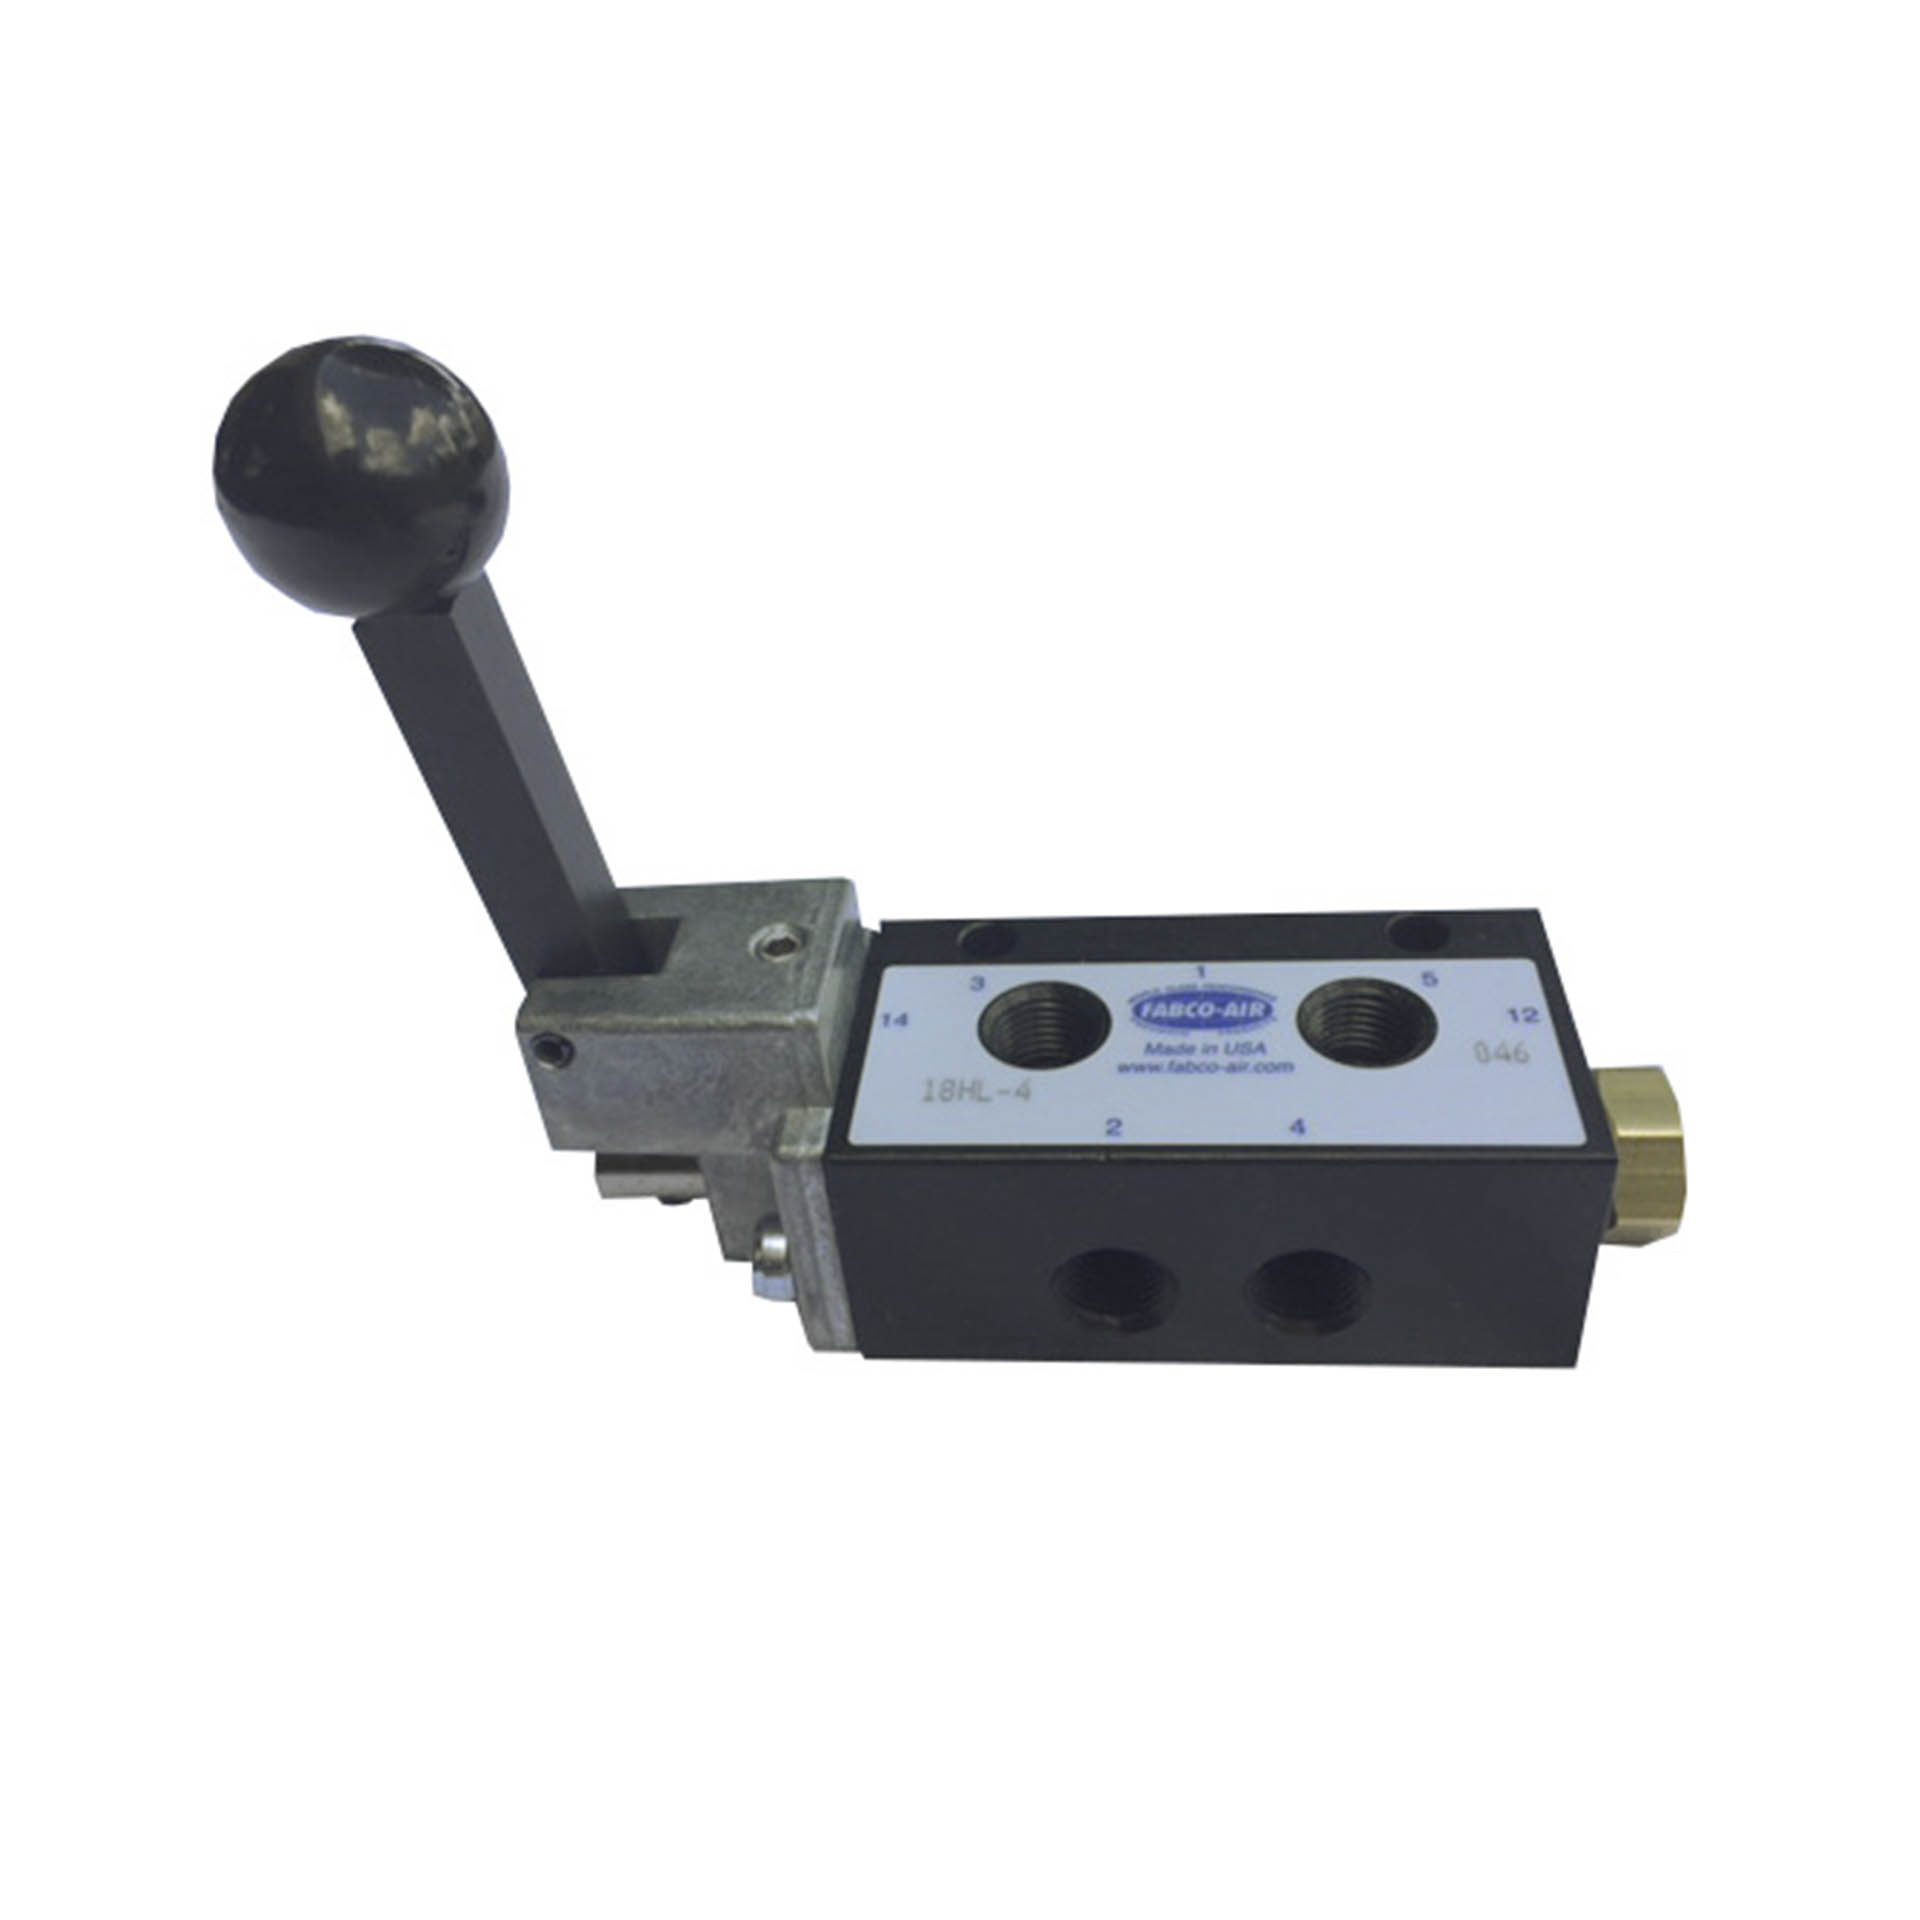 Remote Control Cable Lever : Buy remote control lever online at access truck parts